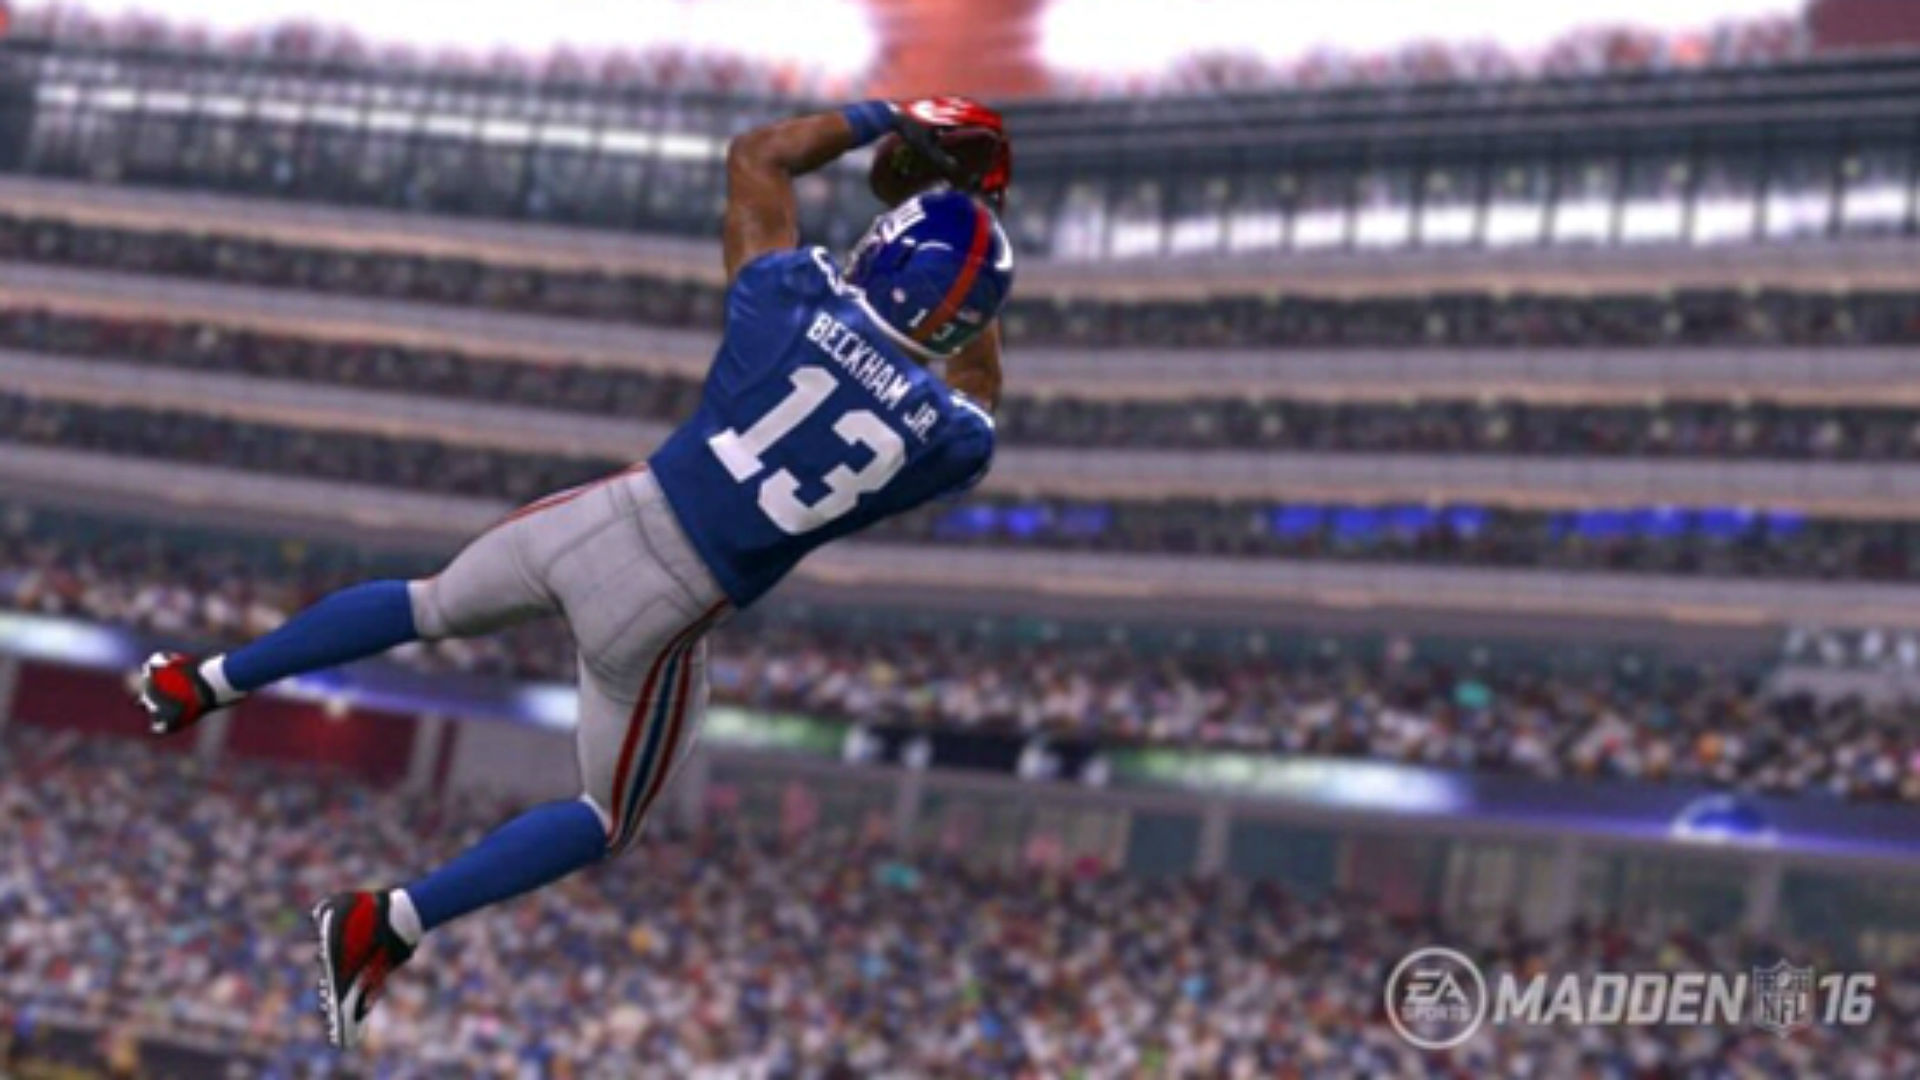 Madden NFL 16 HD Wallpapers and Background Images   stmednet 1920x1080